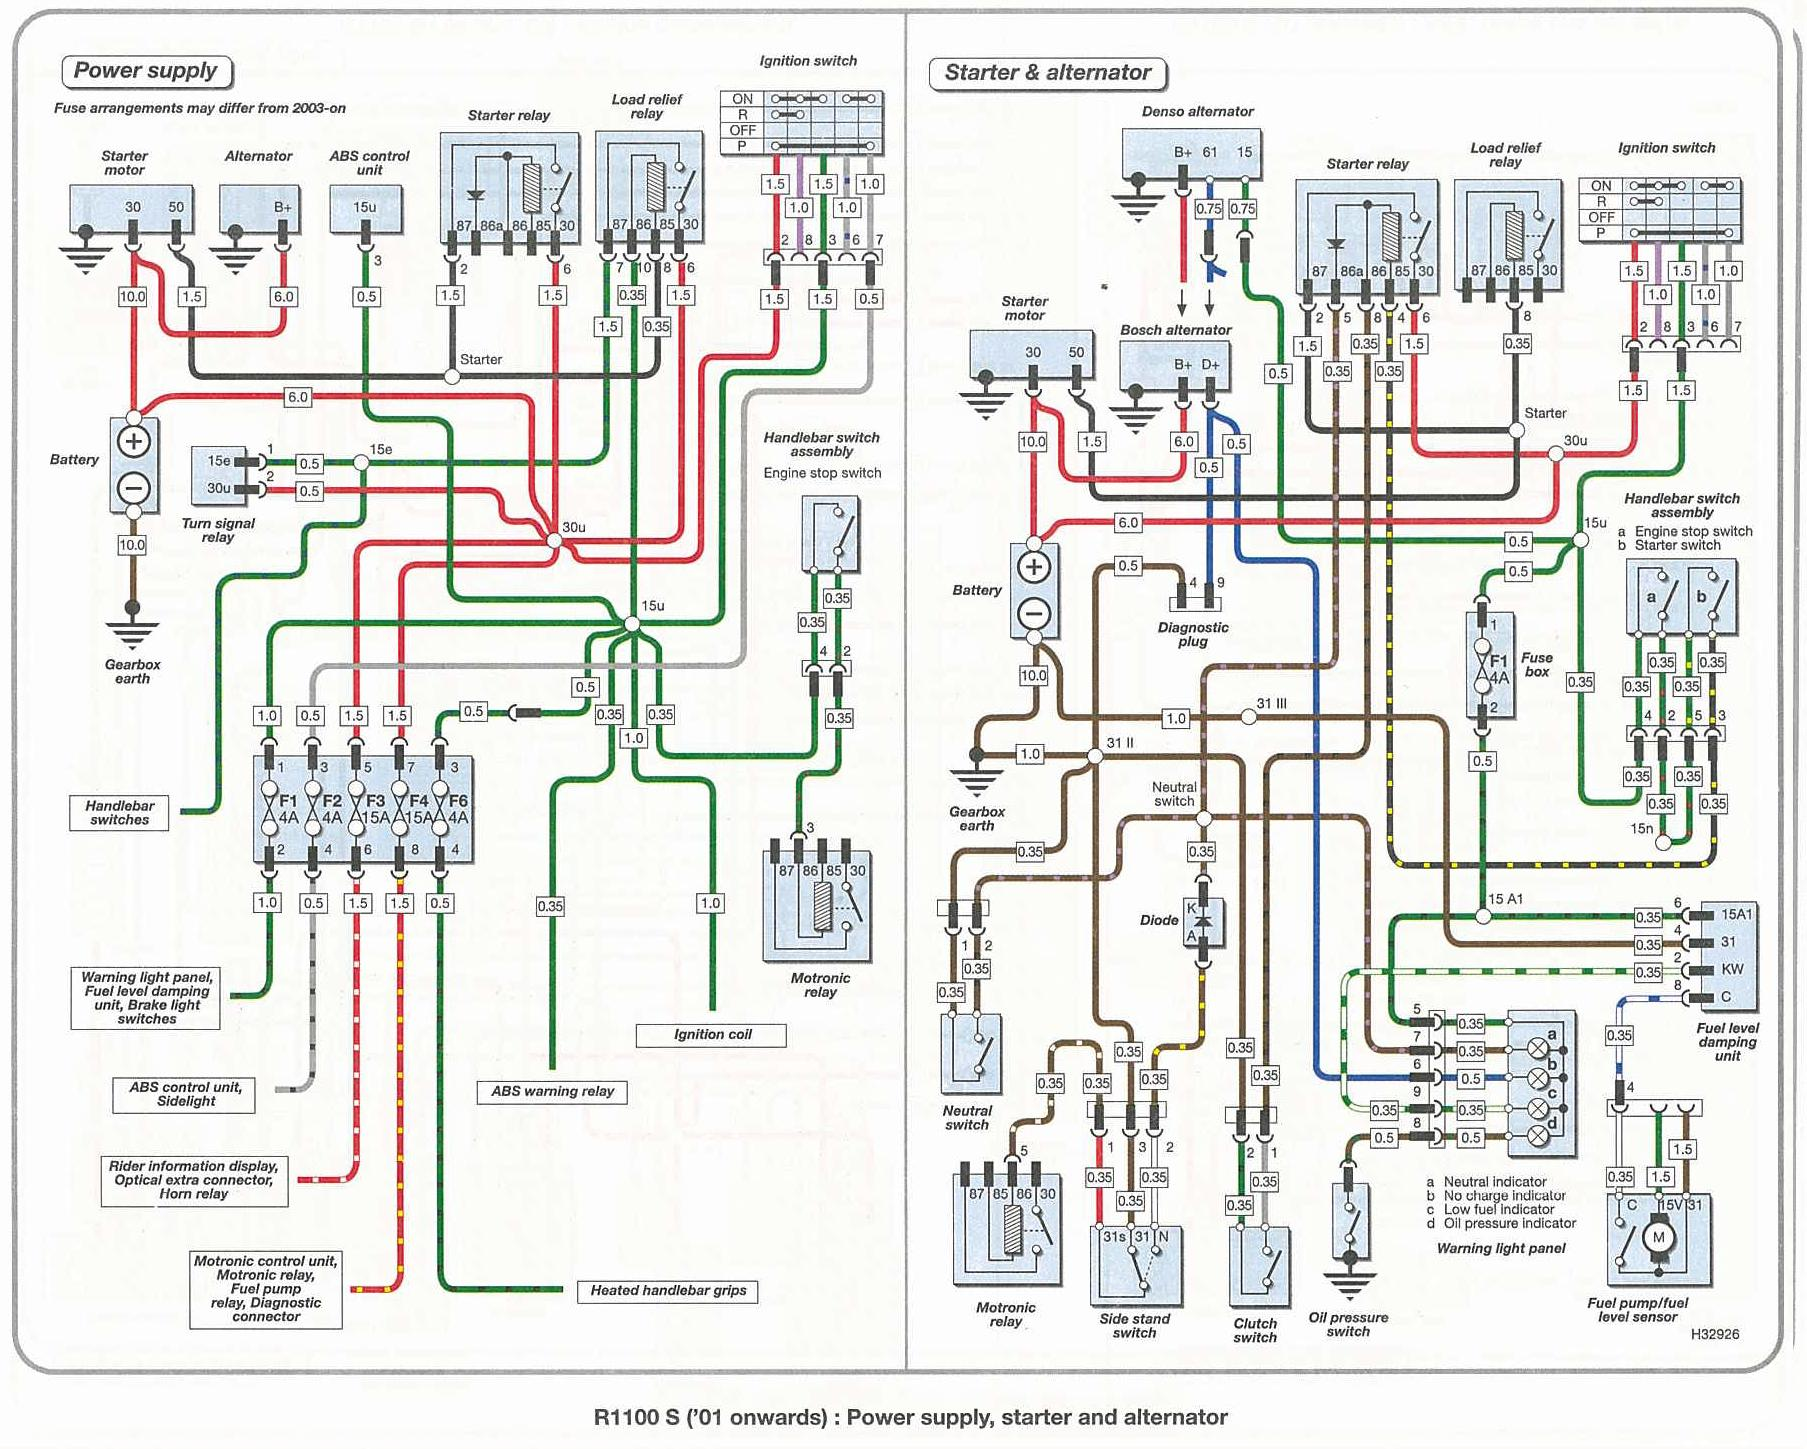 wiring05 bmw e38 wiring diagram bmw e38 manual \u2022 wiring diagrams j squared co 2001 BMW X5 Interior Diagram at soozxer.org